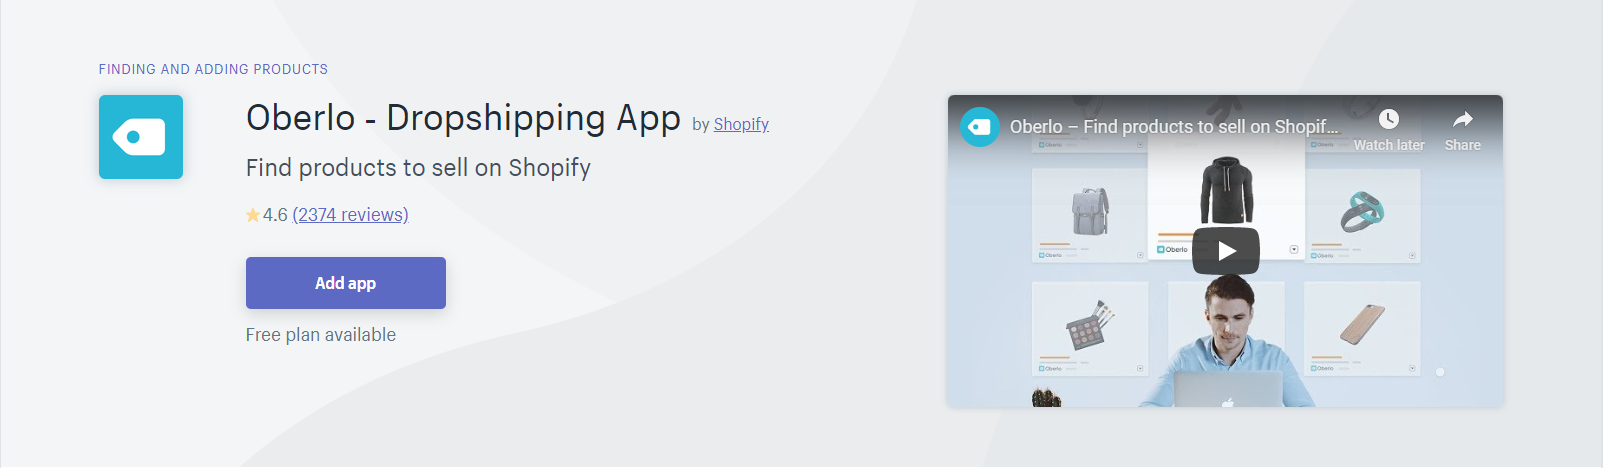 Oberlo Shopify App Dropshipping